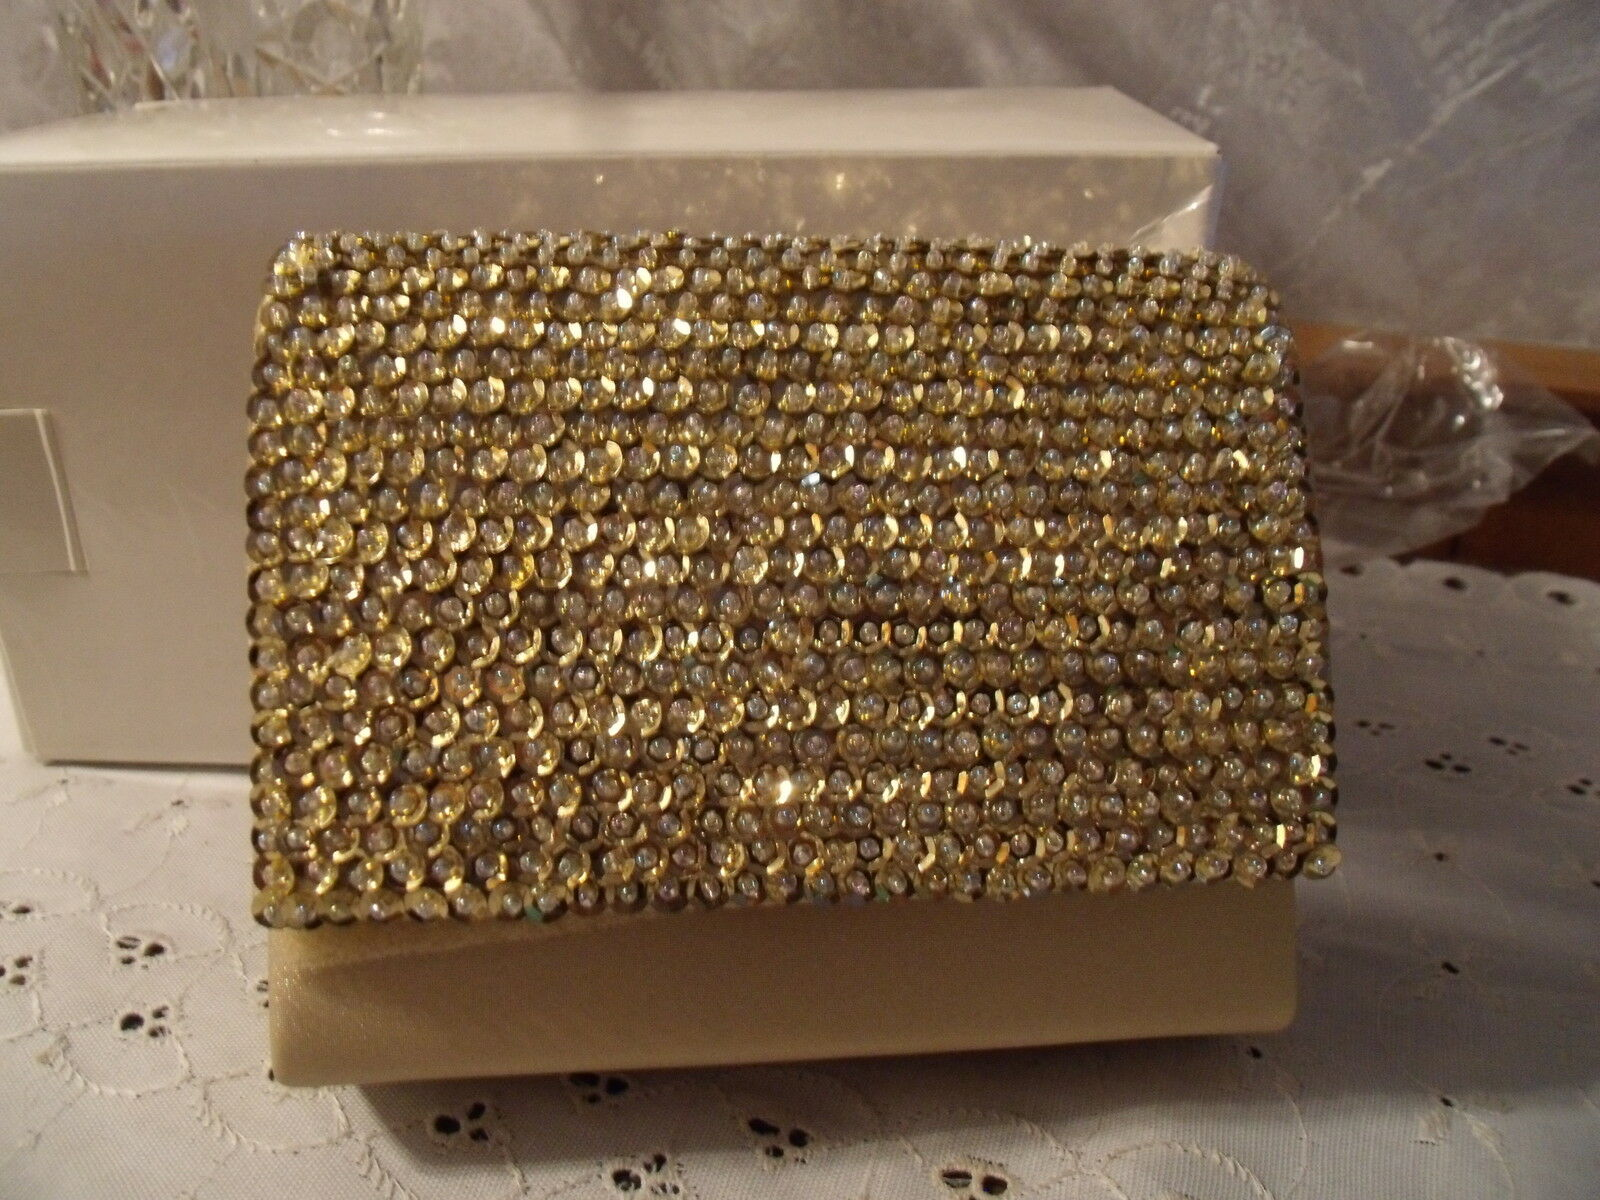 SEQUIN PURSE CLUTCH EVENING OR WEDDING FORMAL CHOOSE 1 FROM RED, BLUE, SILVER